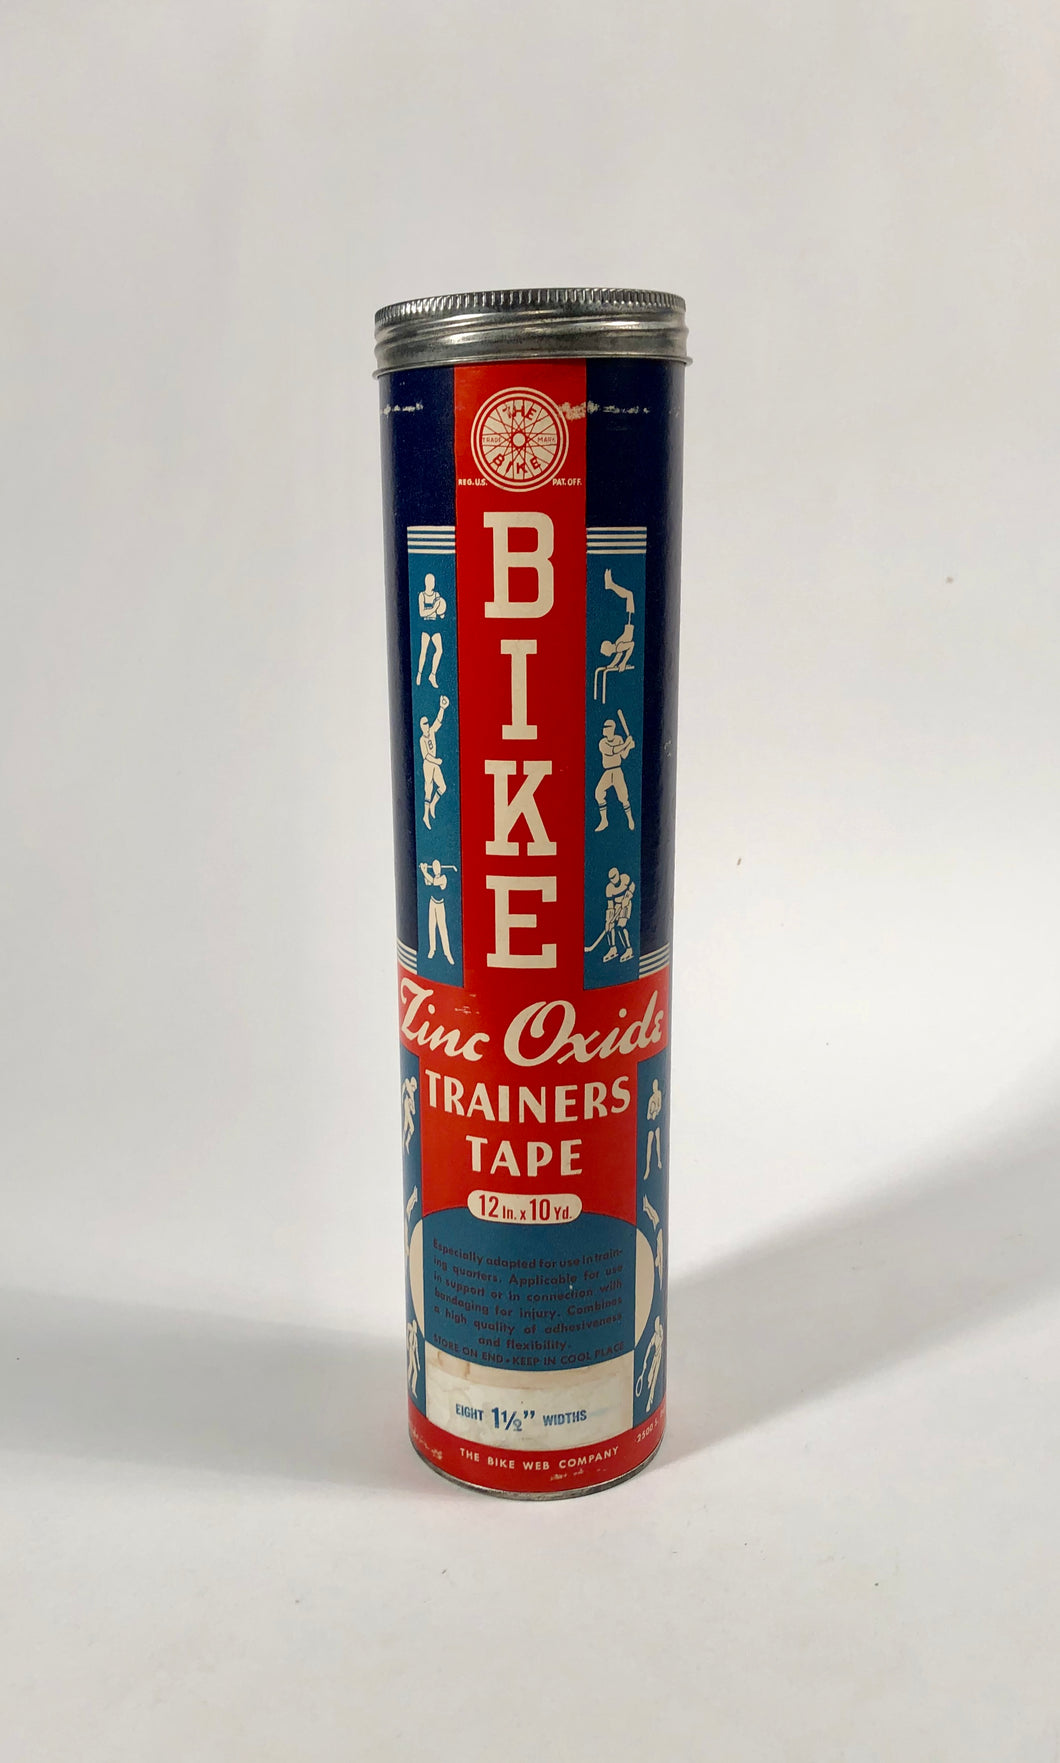 BIKE Zinc Oxide Trainer's Tape Tube Package || The Bike Web Co.